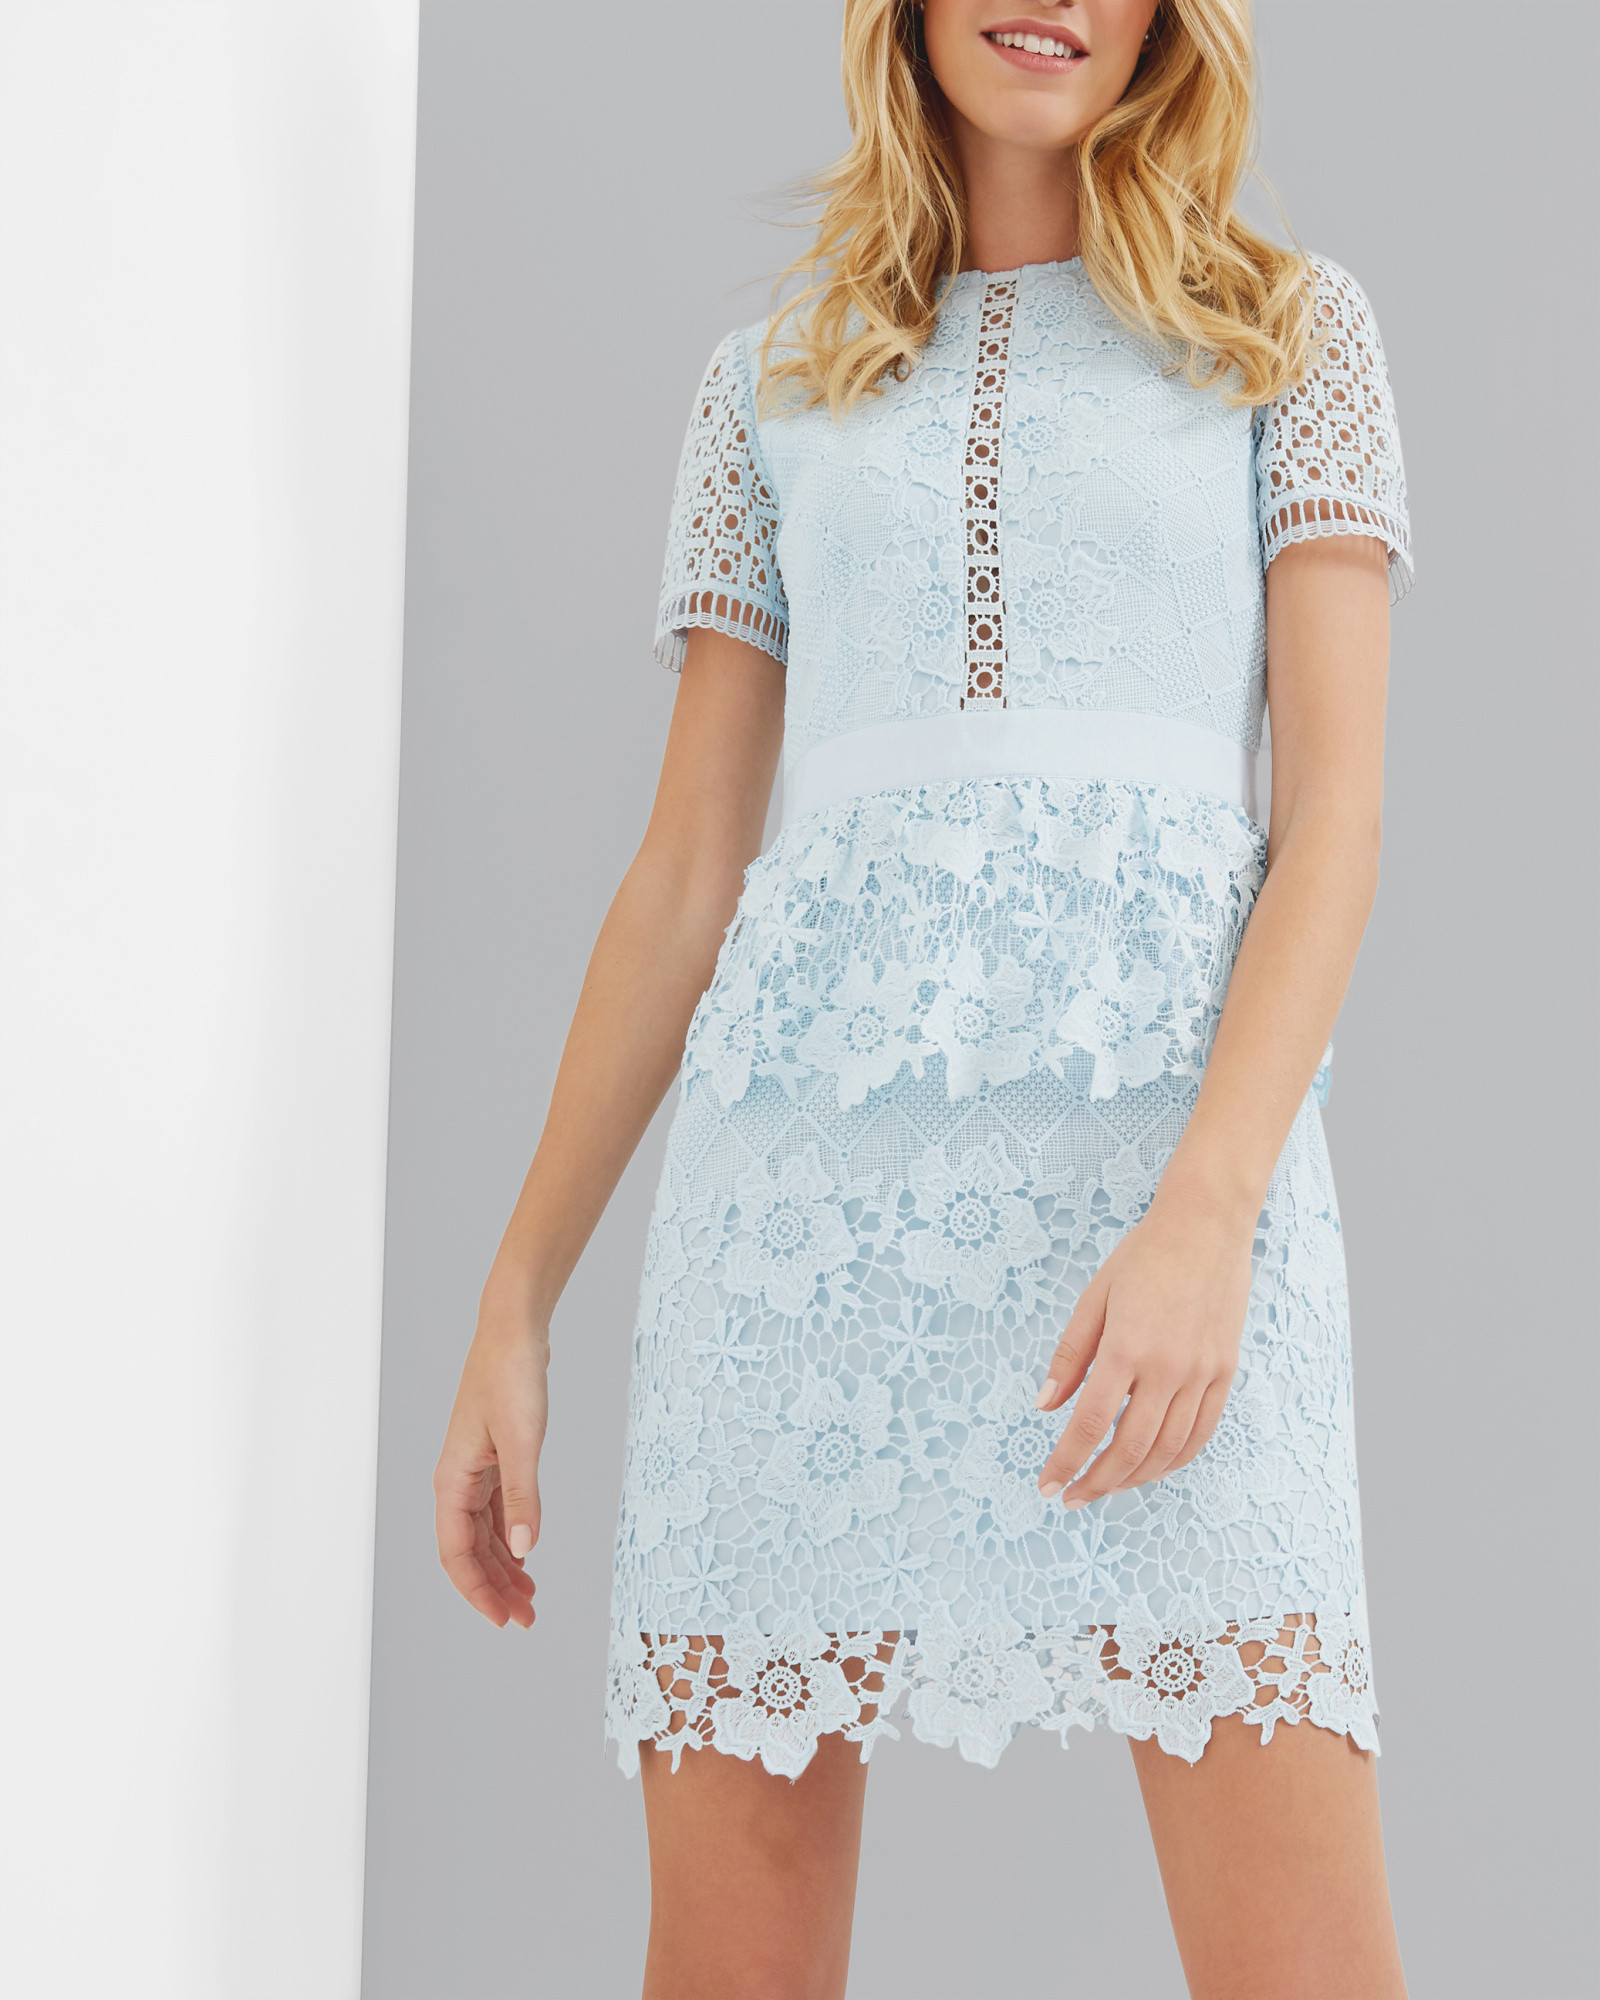 Layered Lace Dress Baby Blue Dresses Ted Baker With Images Dress Clothes For Women Lacy Dress Designer Outfits Woman